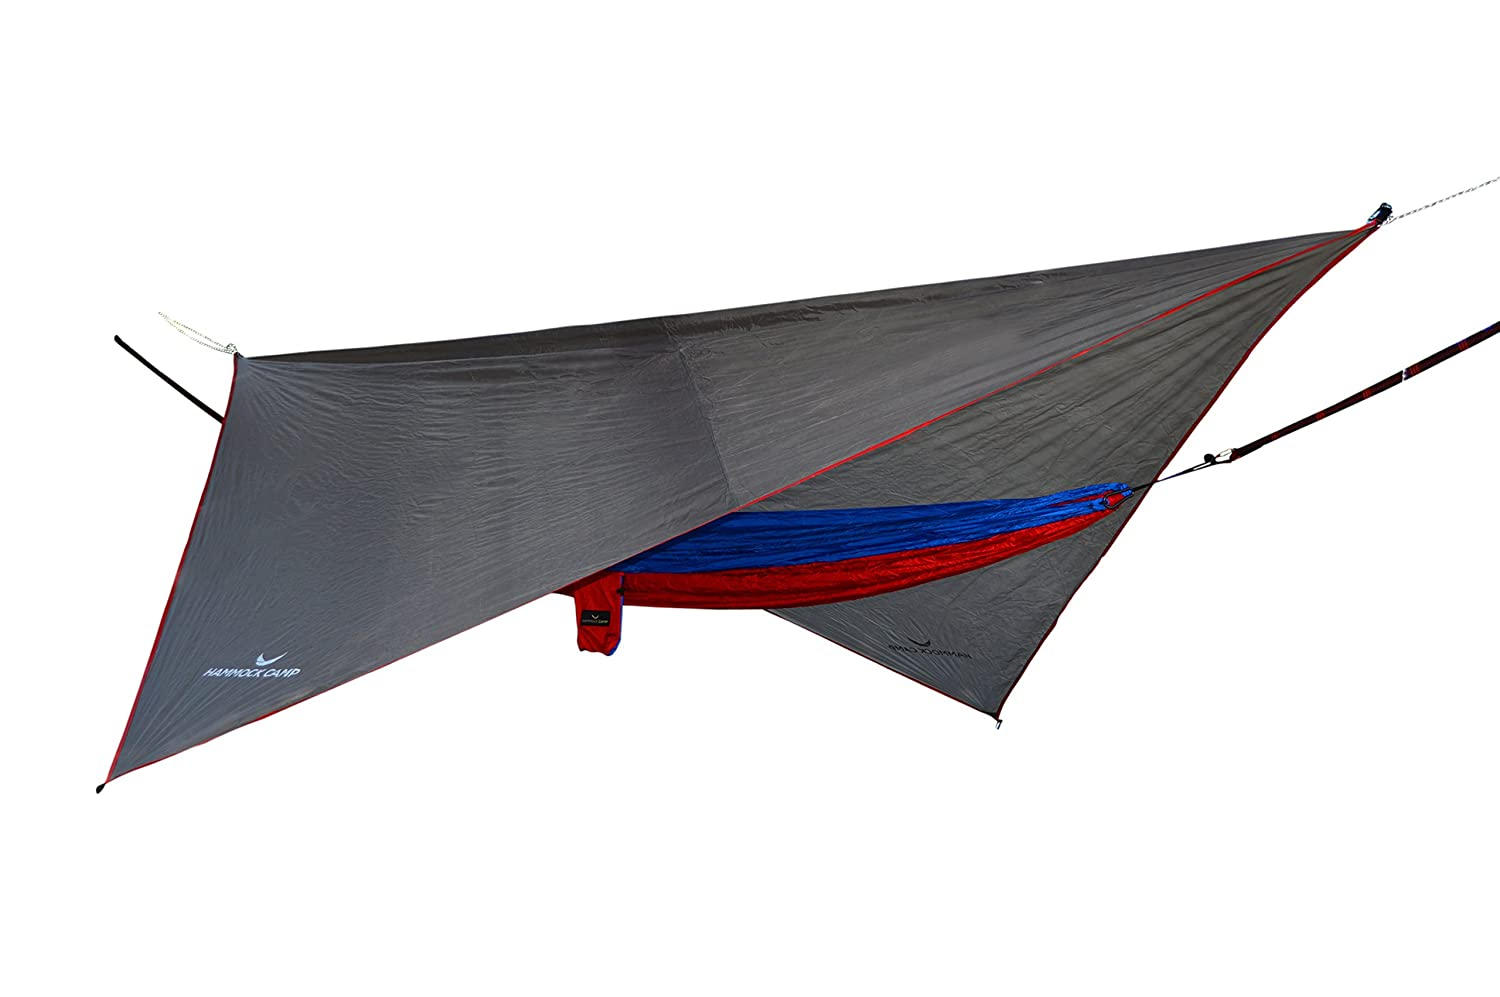 8e0ba961c HAMMOCK CAMP - Easy Set Up Portable Hammock Fly Tarp Shelter - Quality  Lightweight Waterproof Tent Polyester - Perfect Cover While Backpacking  Outdoors ...